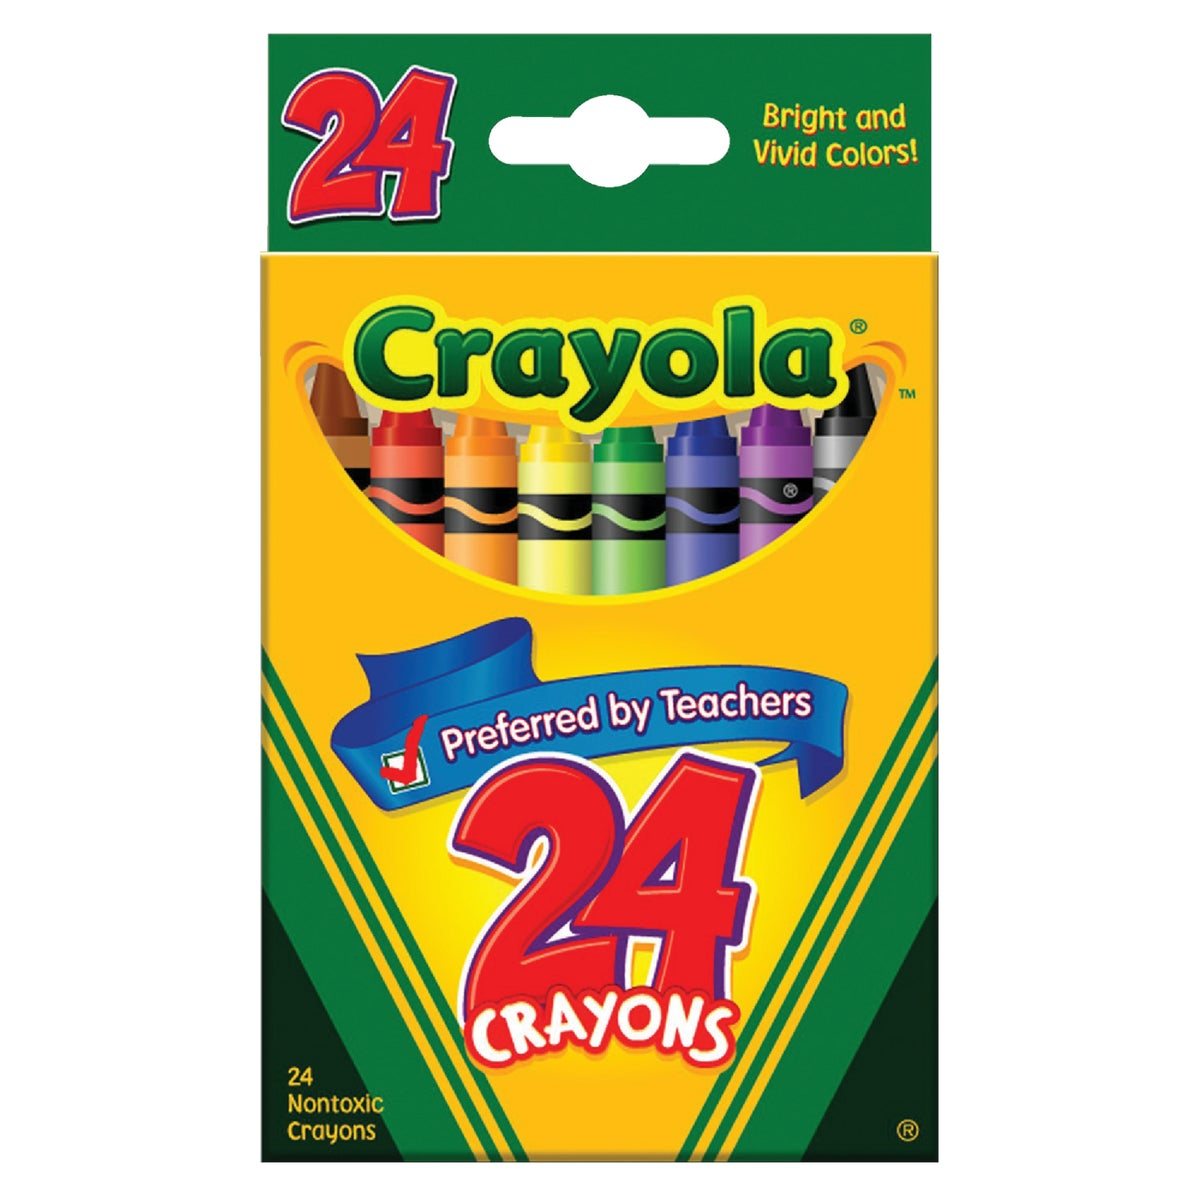 24CT CRAYONS - 52-3024 by Crayola L L C